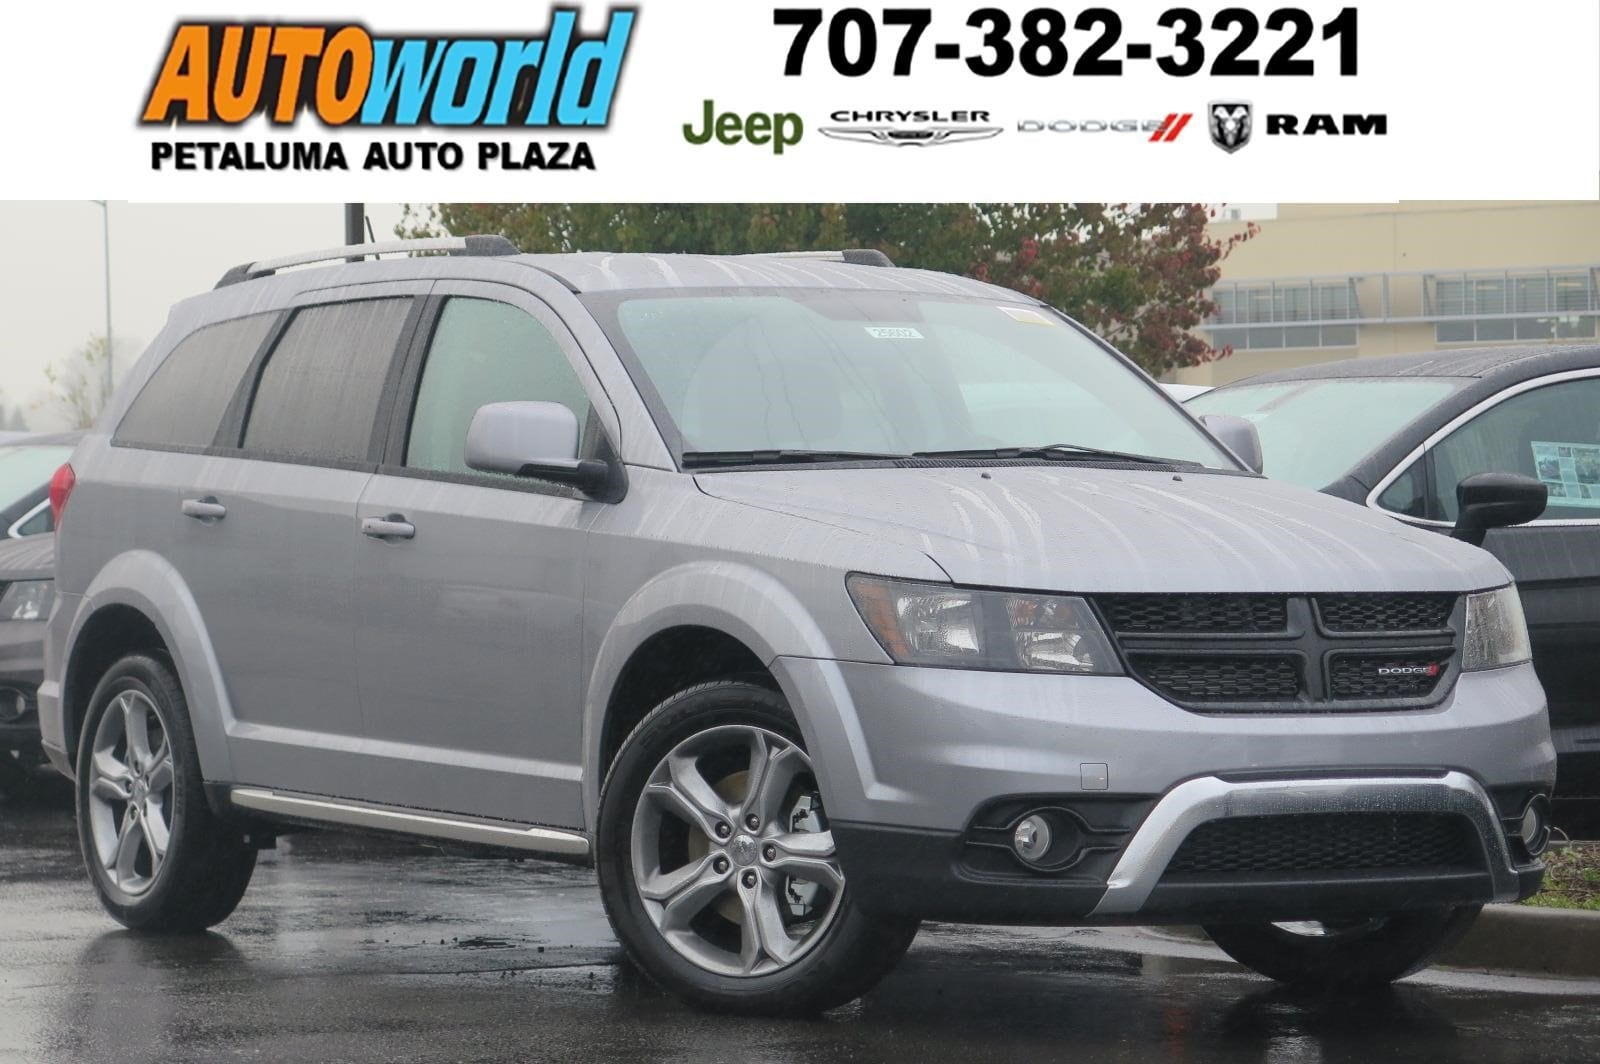 2017 Dodge Journey Crossroad SUV 25602